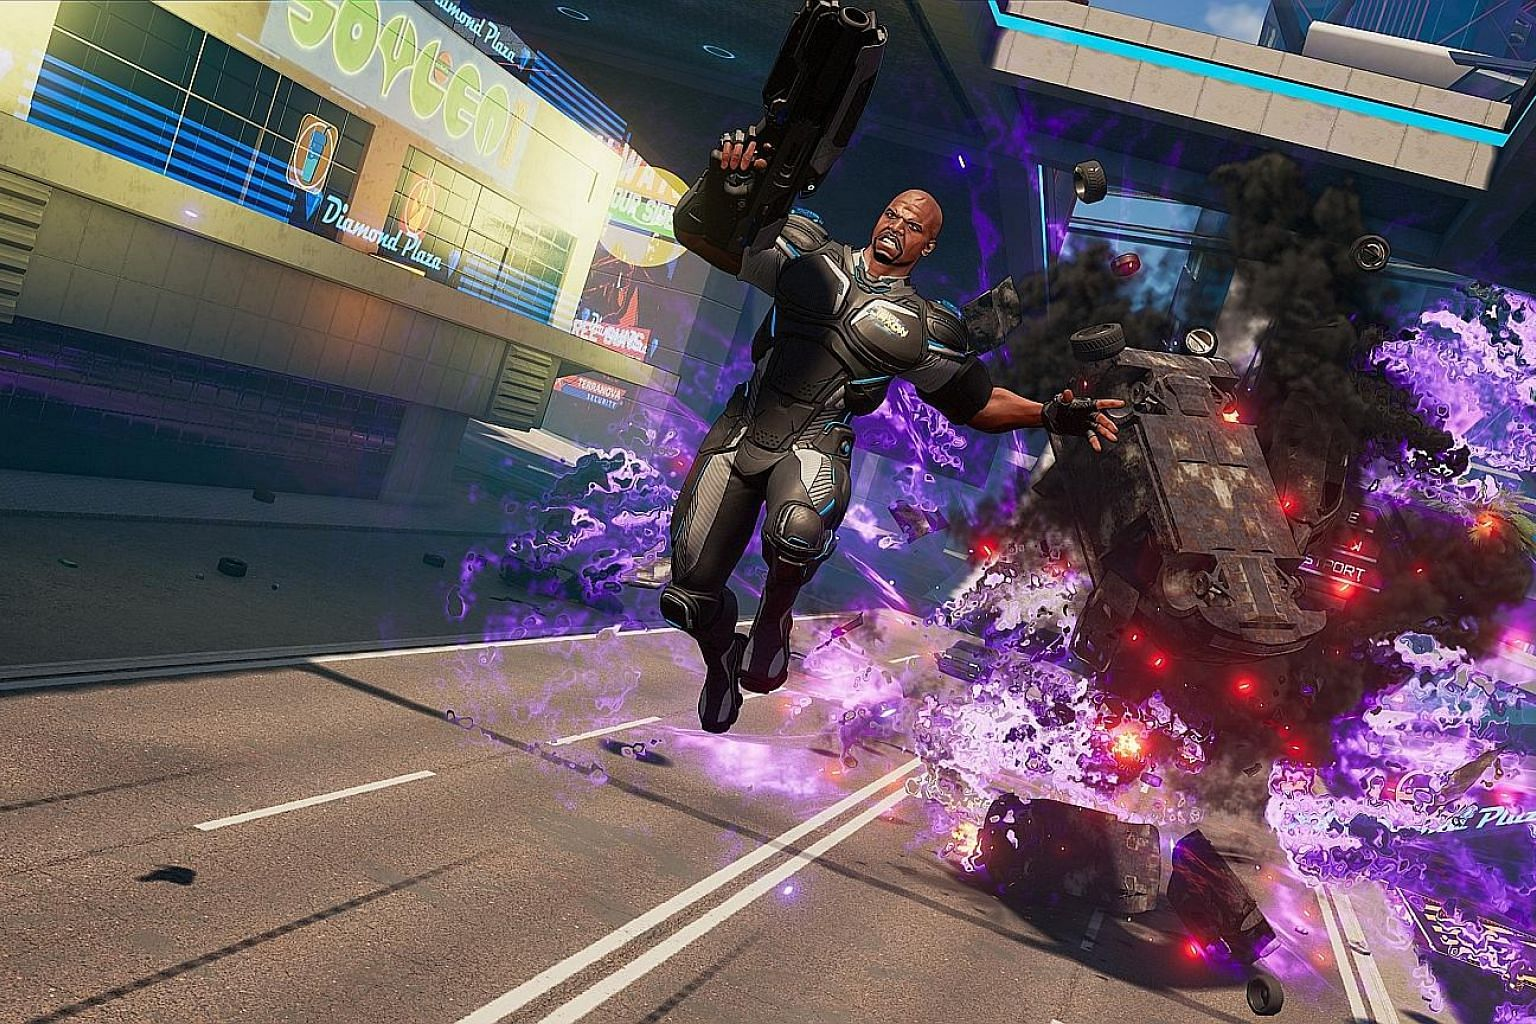 Actor Terry Crews lends his face to team commander Isaiah Jaxon in Crackdown 3.